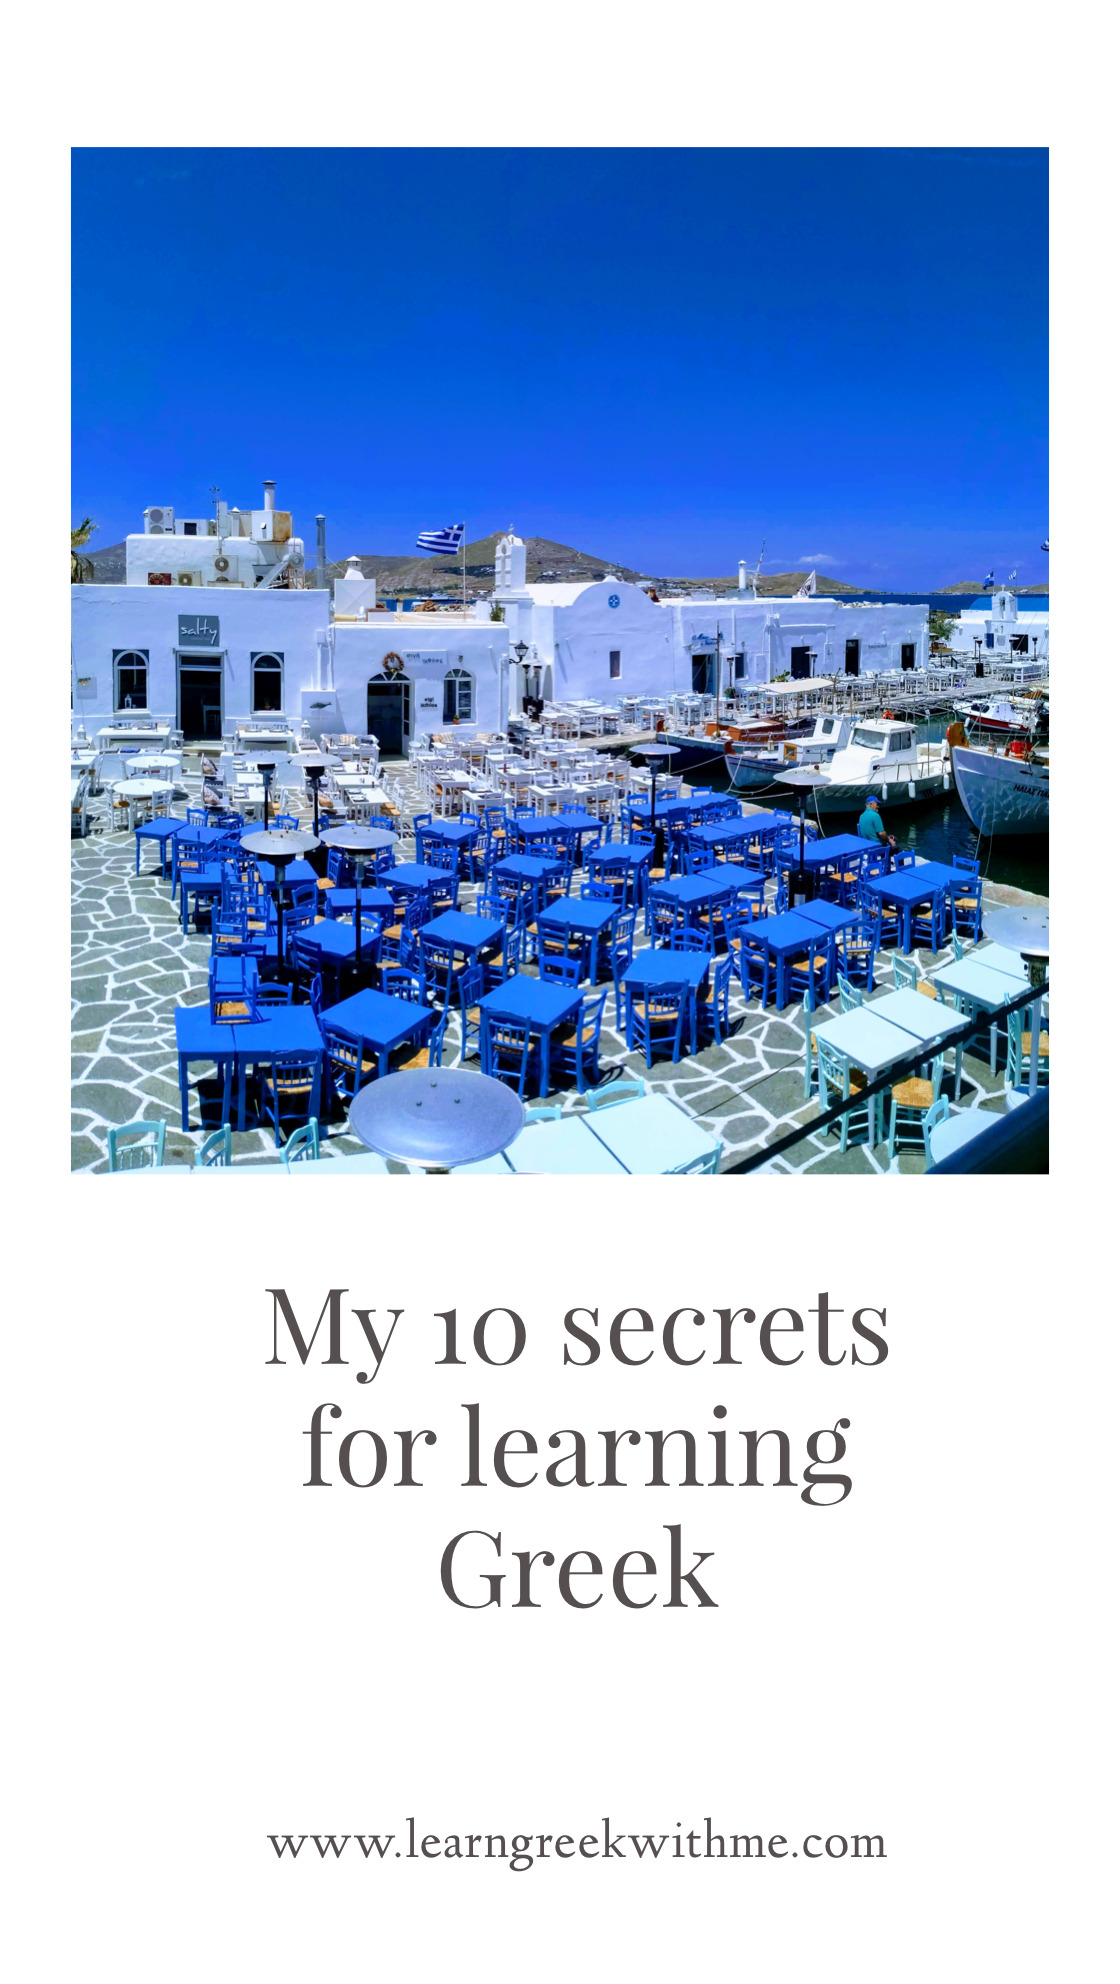 My 10 secrets for learning Greek!